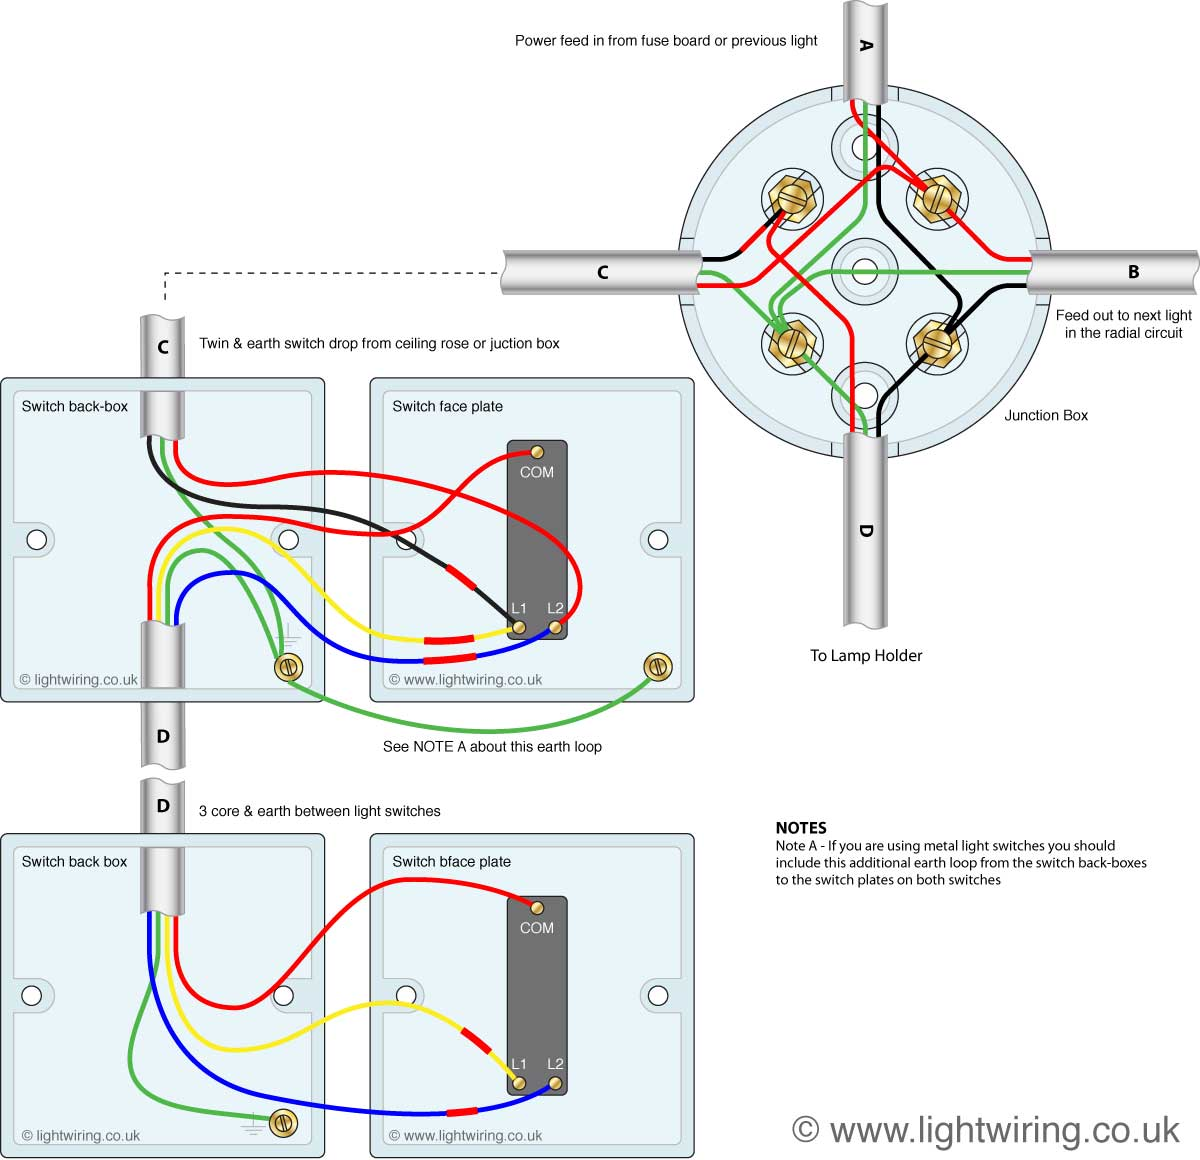 3 way switching from junction box 2 way switch (3 wire system, old cable colours) light wiring radial lighting circuit wiring diagram at virtualis.co